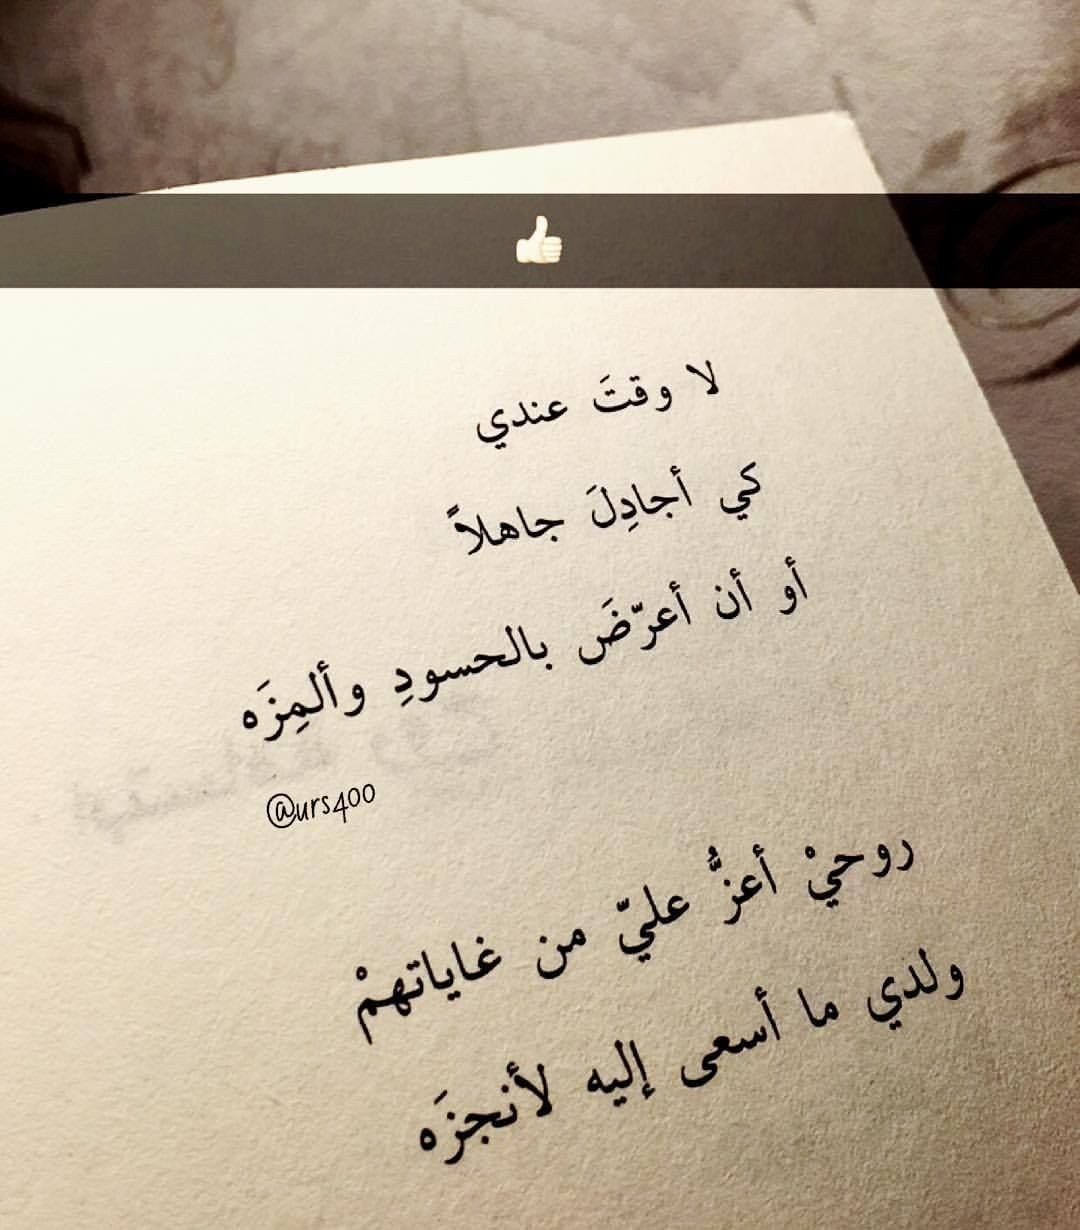 Smr تفاصيل أخرى للماء سلطان السبهان Words Quotes Laughing Quotes Good Day Quotes